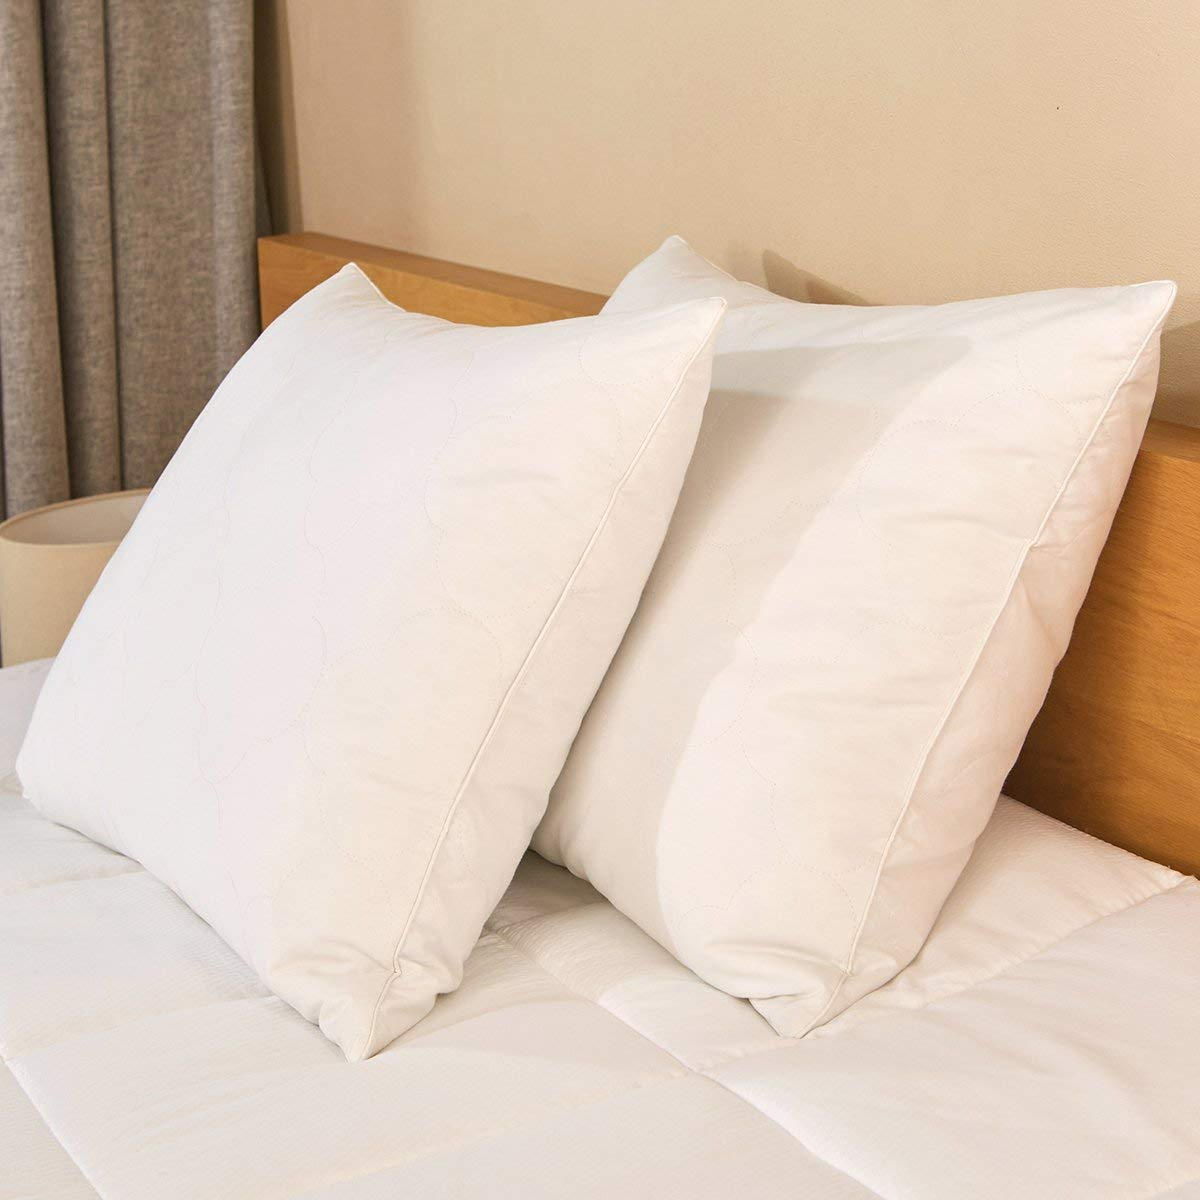 PEACE NEST best feather pillows review by www.dailysleep.org